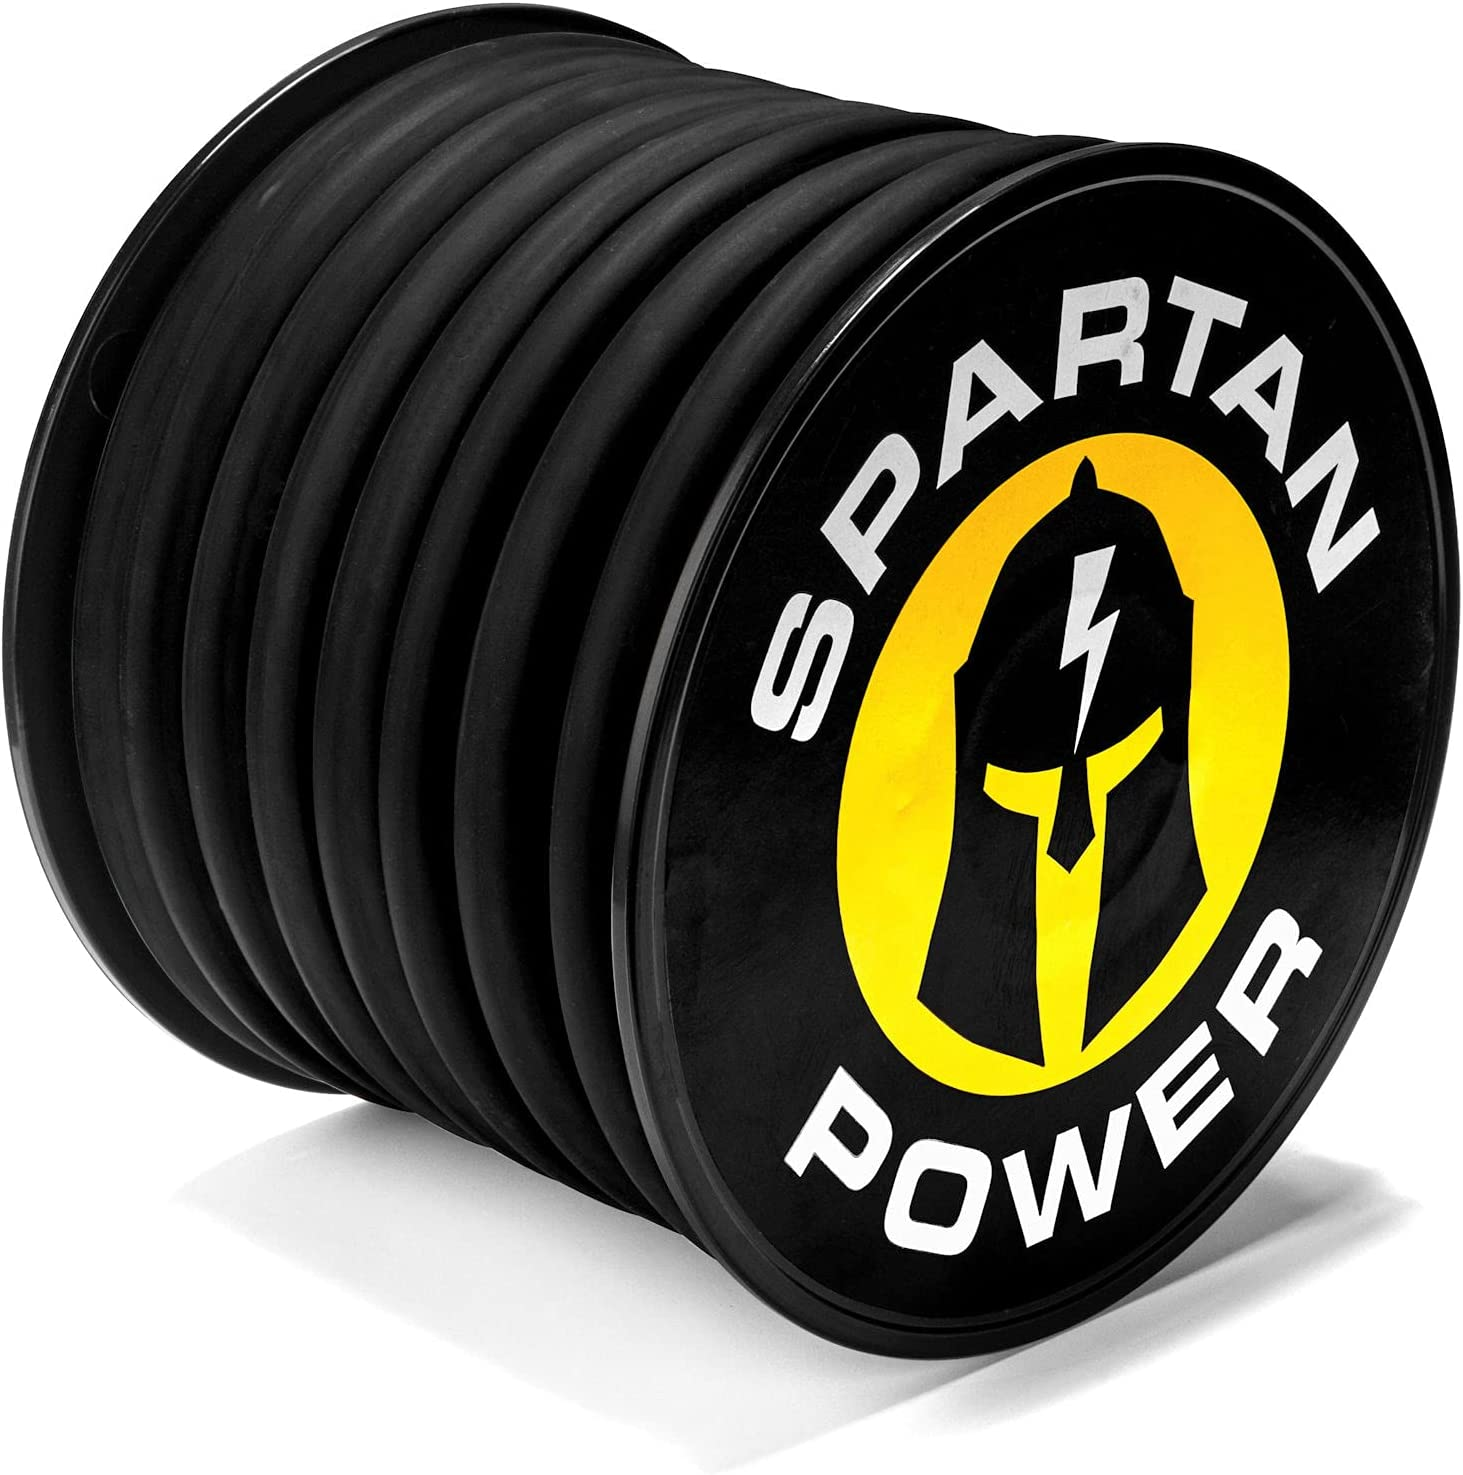 Spartan Power 2 0 Oklahoma City Mall AWG 5 Welding Cable Lead Black Battery Foot SEAL limited product